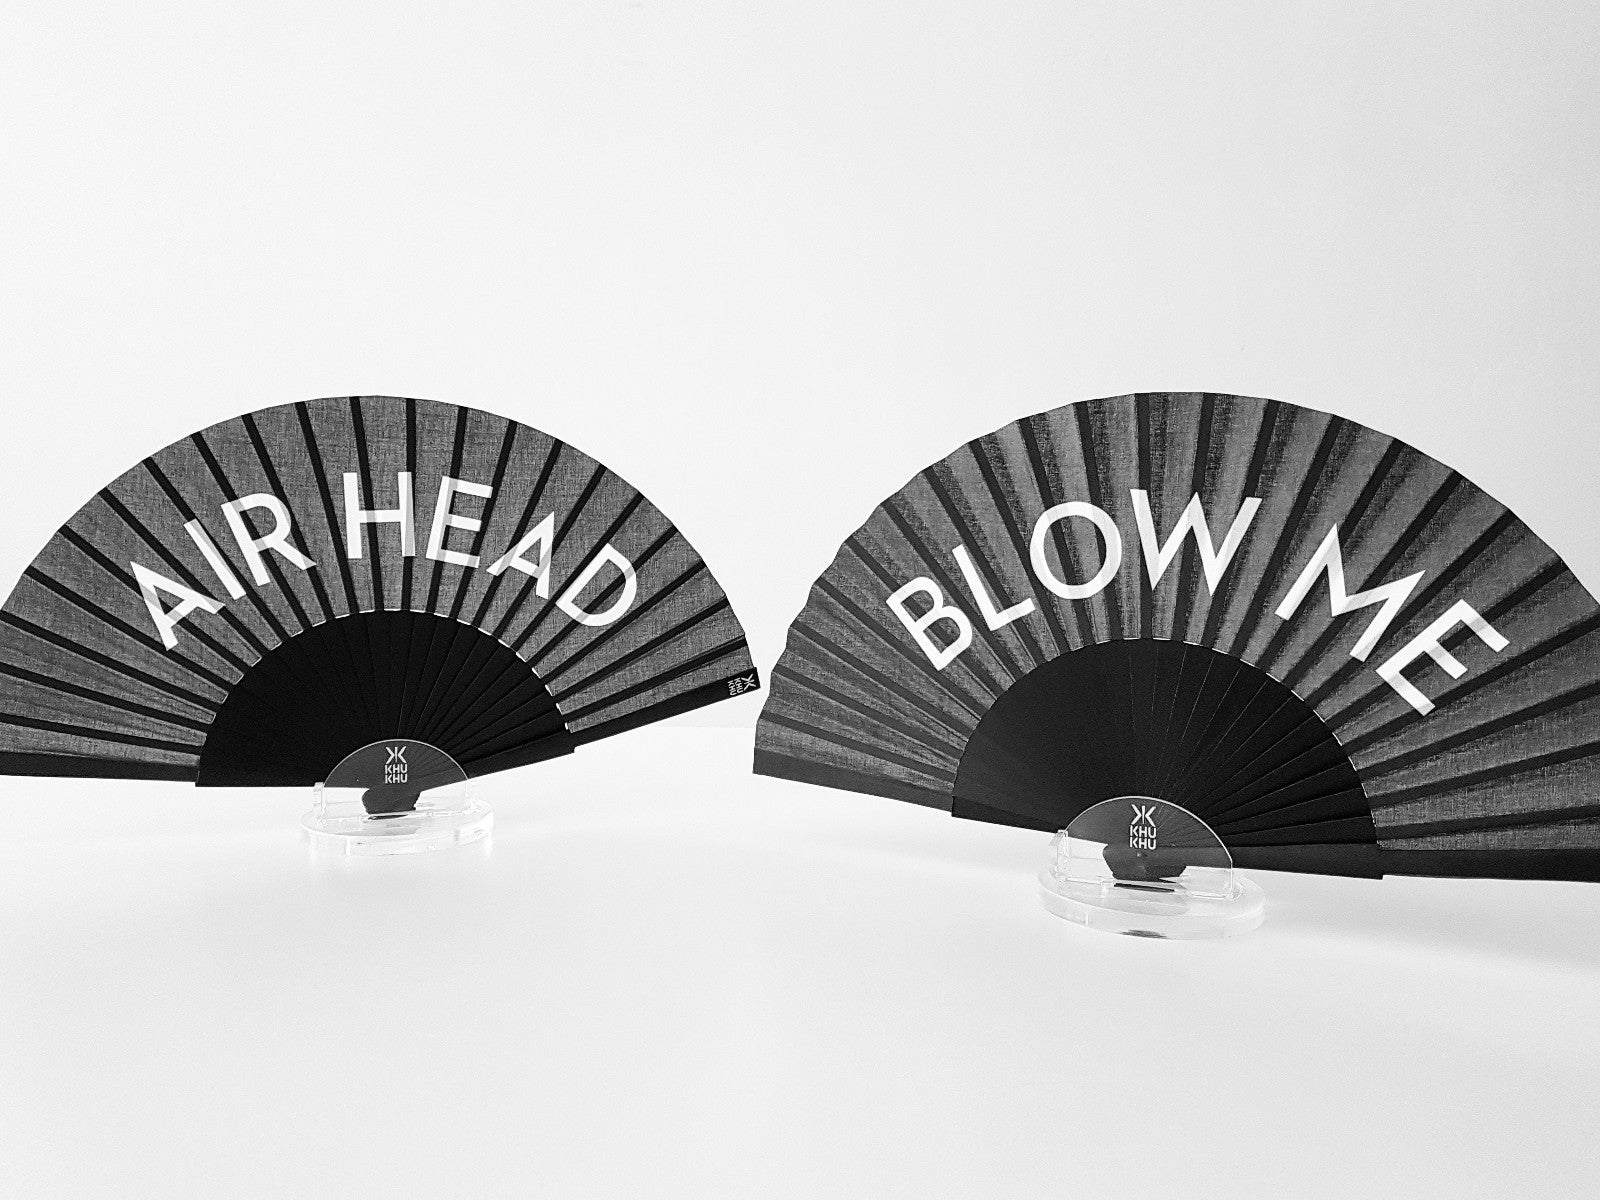 Khu Khu Blow Me and Airhead Statement hand-fans in acrylic stands on a table.